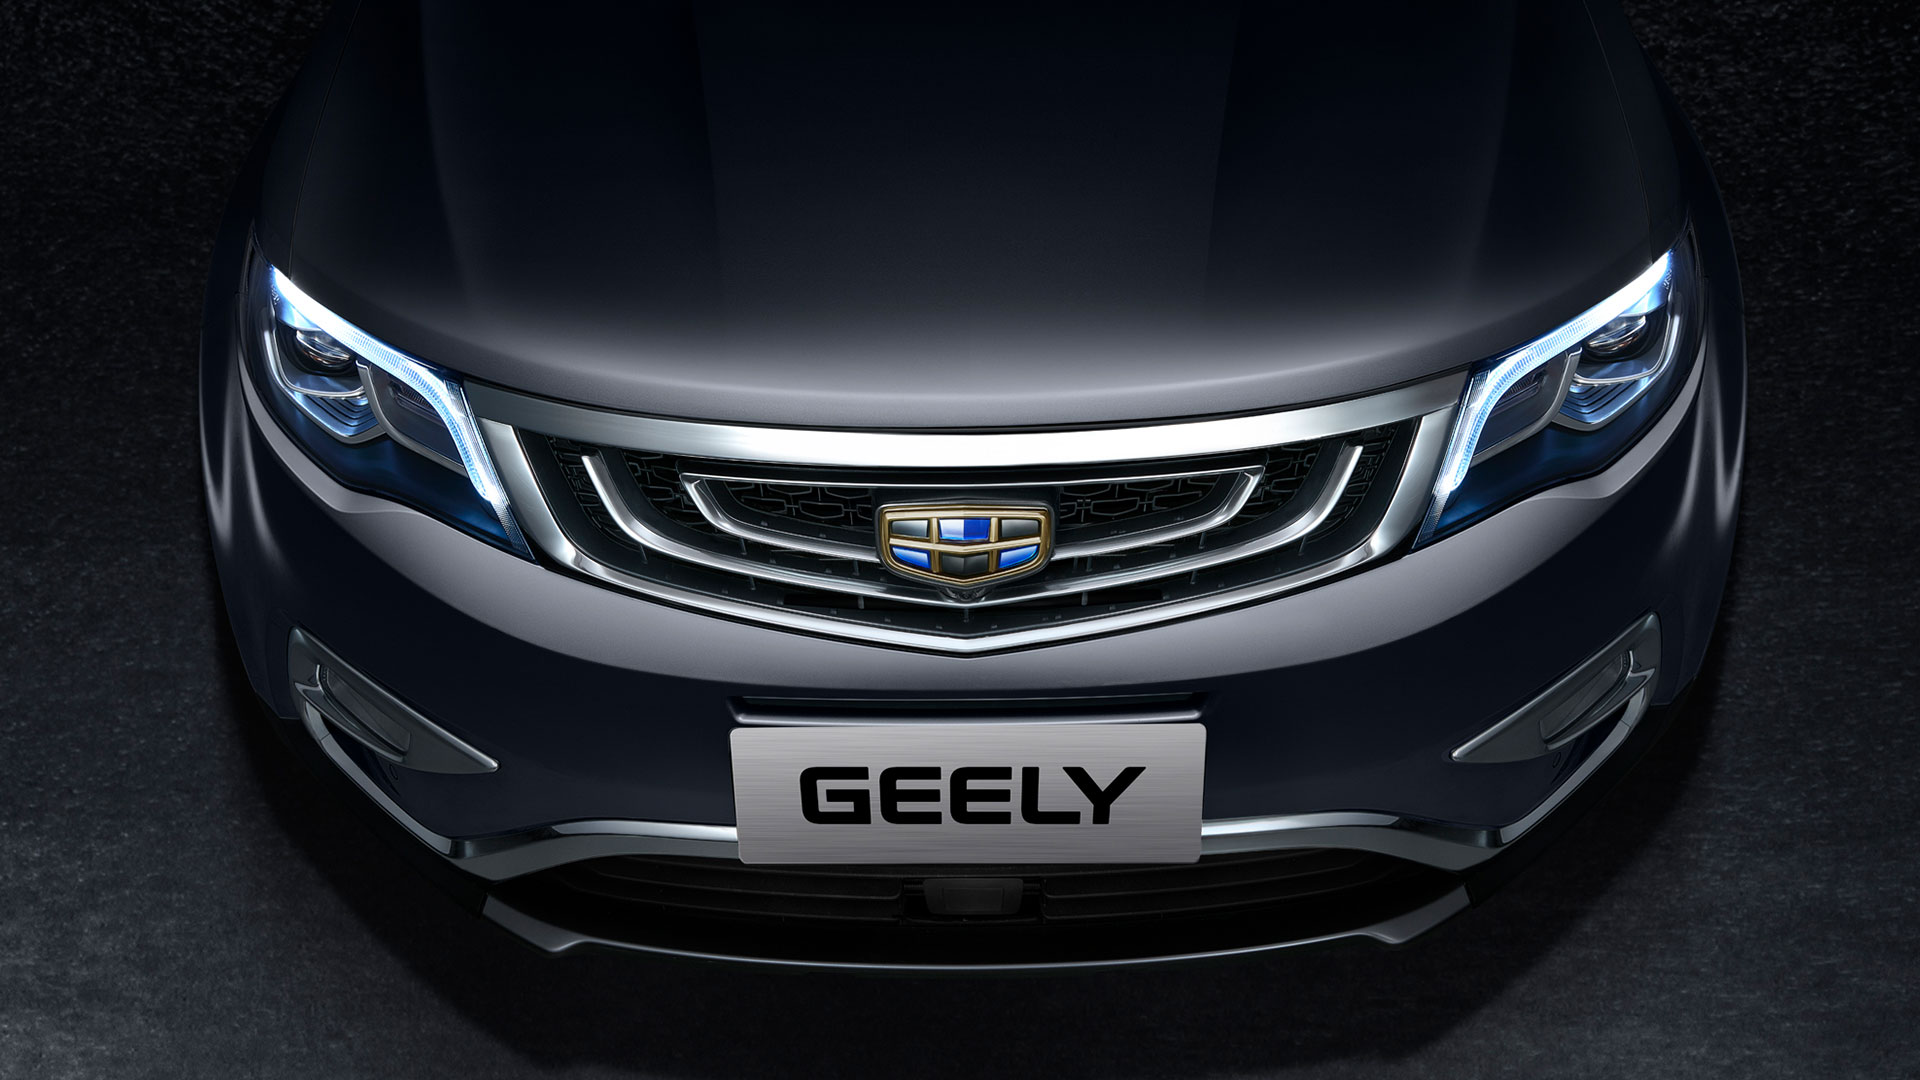 Geely Sales Exceed 1 Million Units Within 8 Months in 2018 10